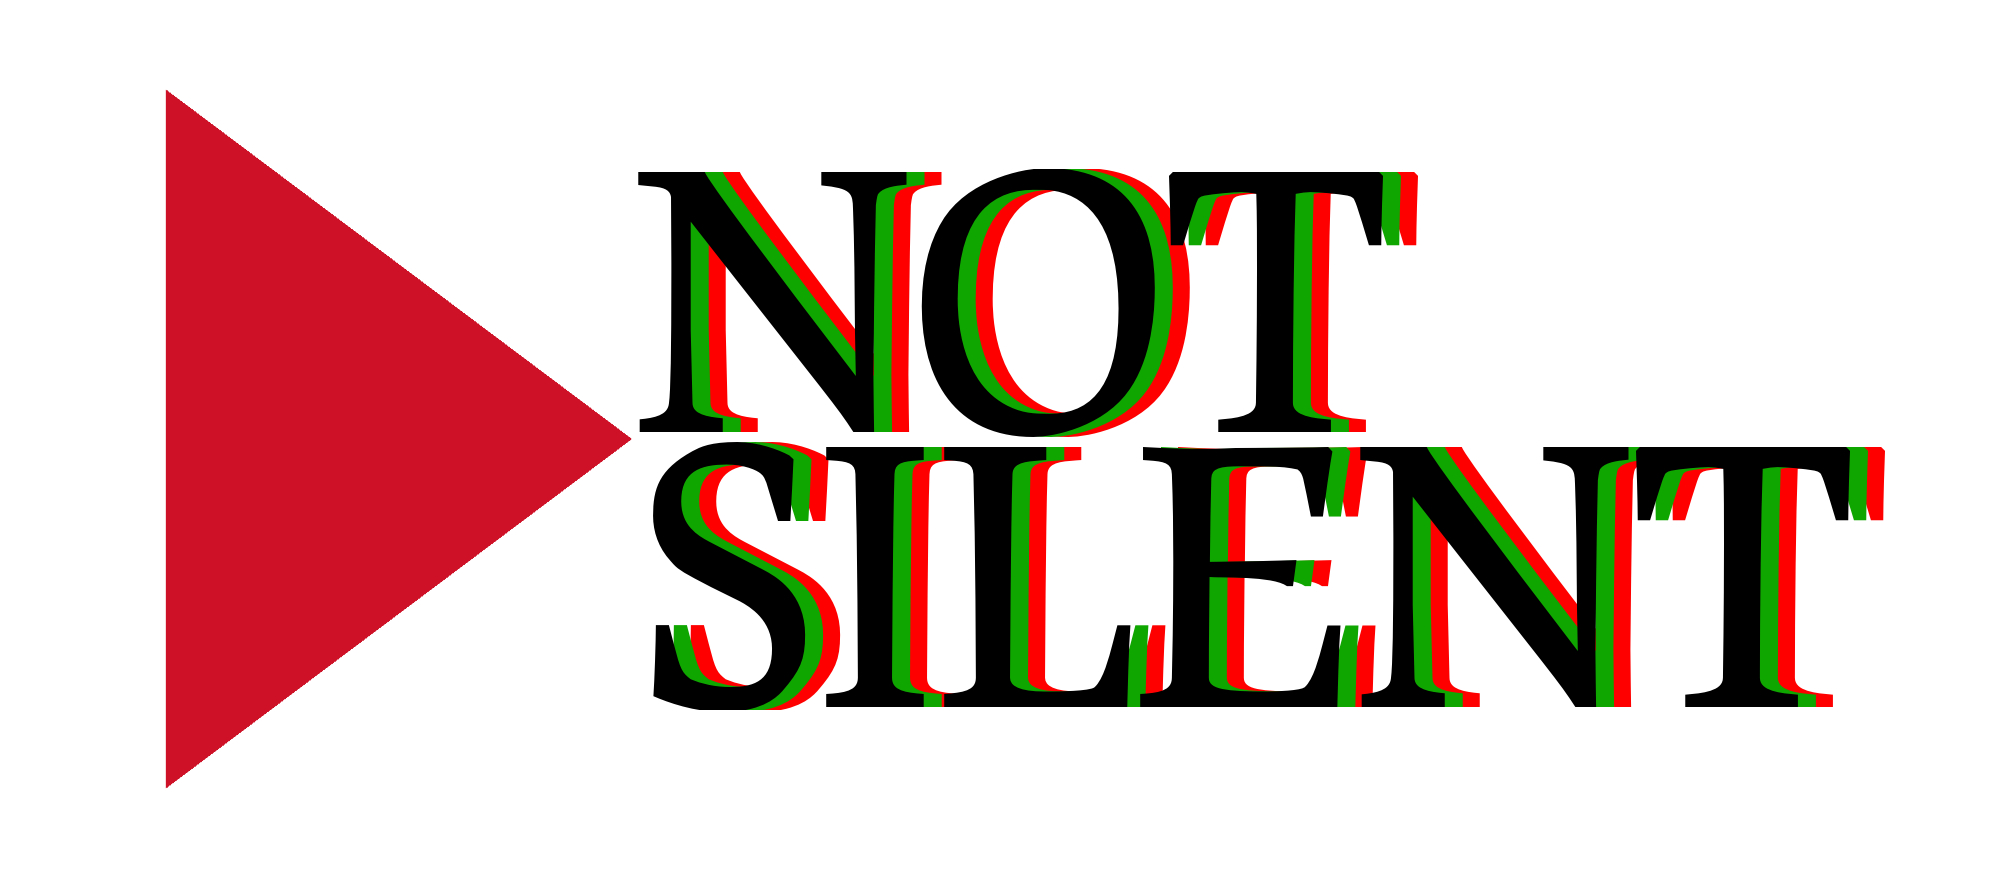 ★ NOT SILENT #1 ★ w/ Spontaneous Amsterdam Ensemble